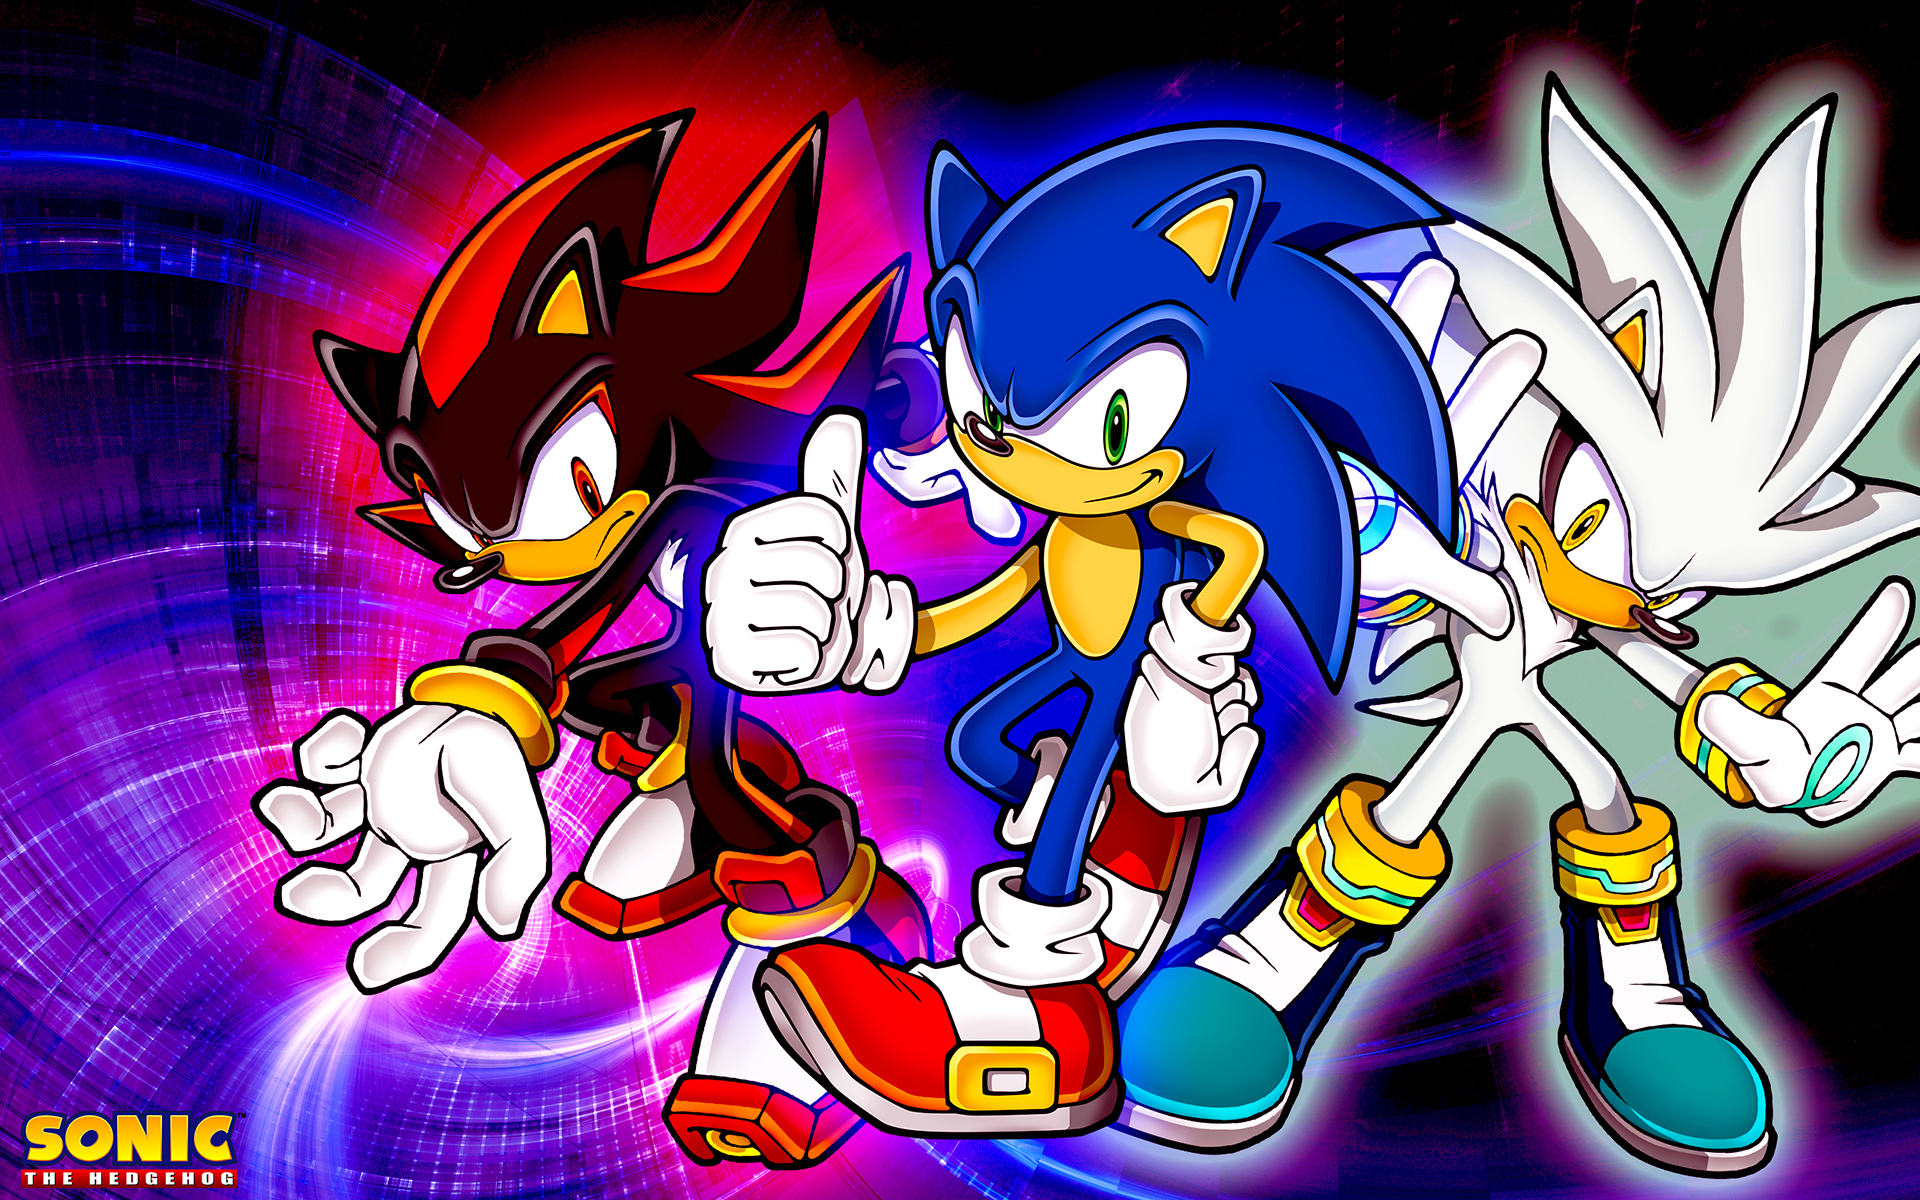 Sonic Shadow And Silver Wallpaper By Sonicthehedgehogbg D5qxvqn